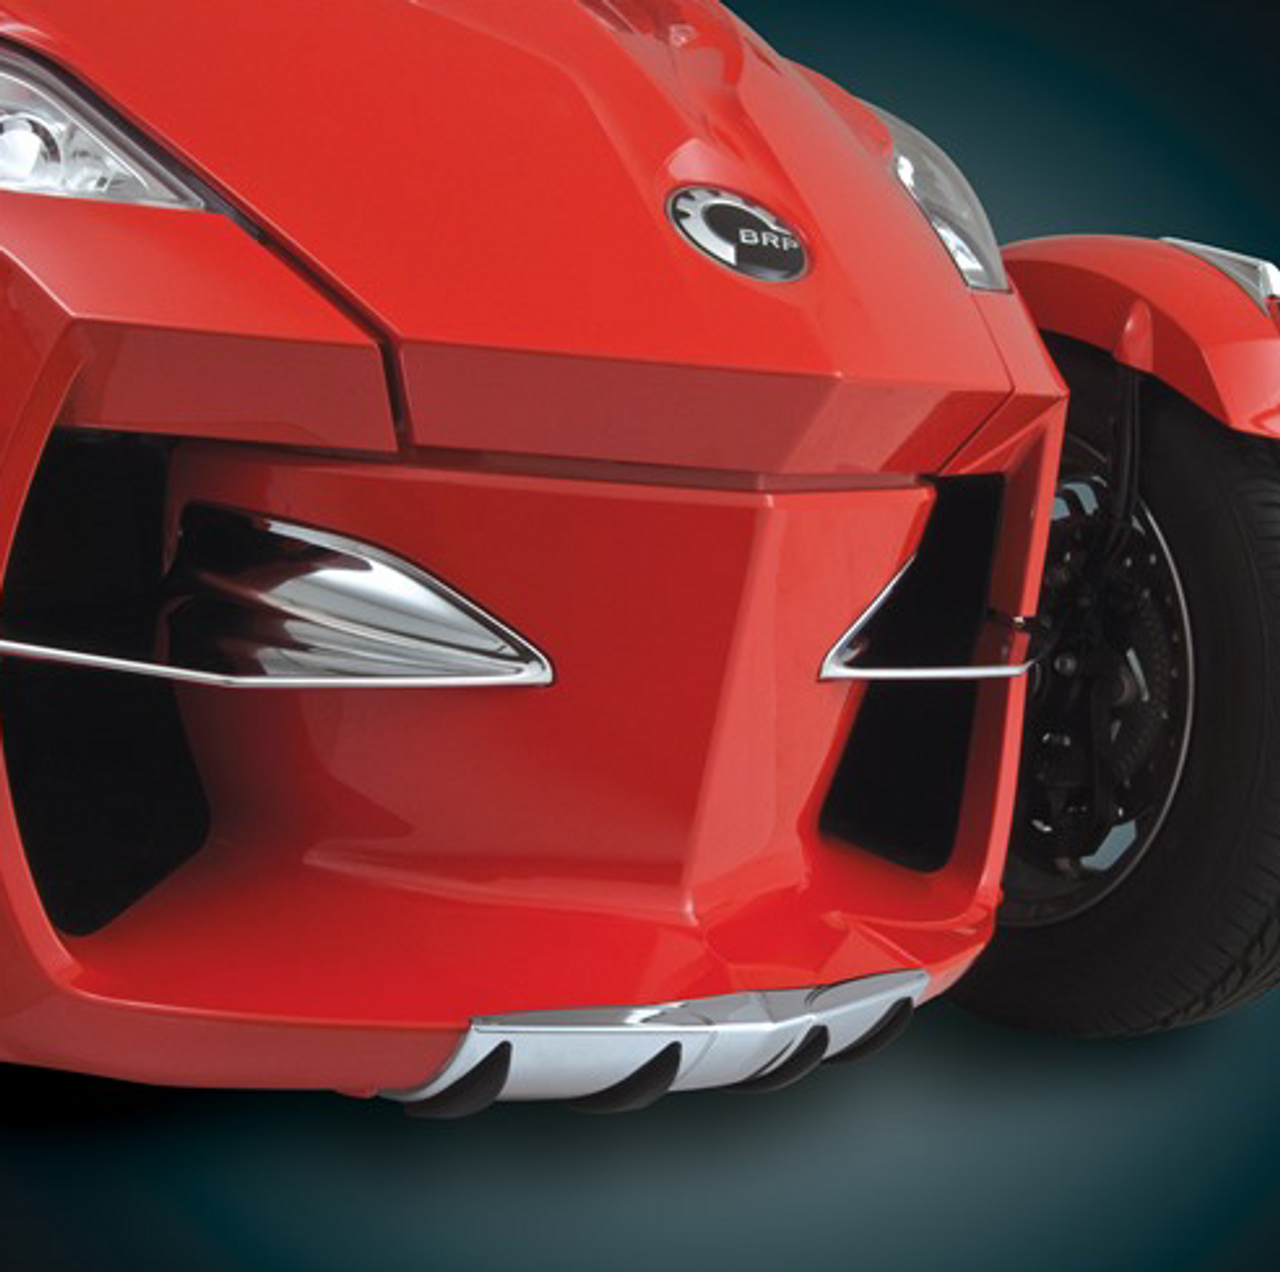 RT Chrome Wear Bar Accent (Front nose protection) 2010-2013